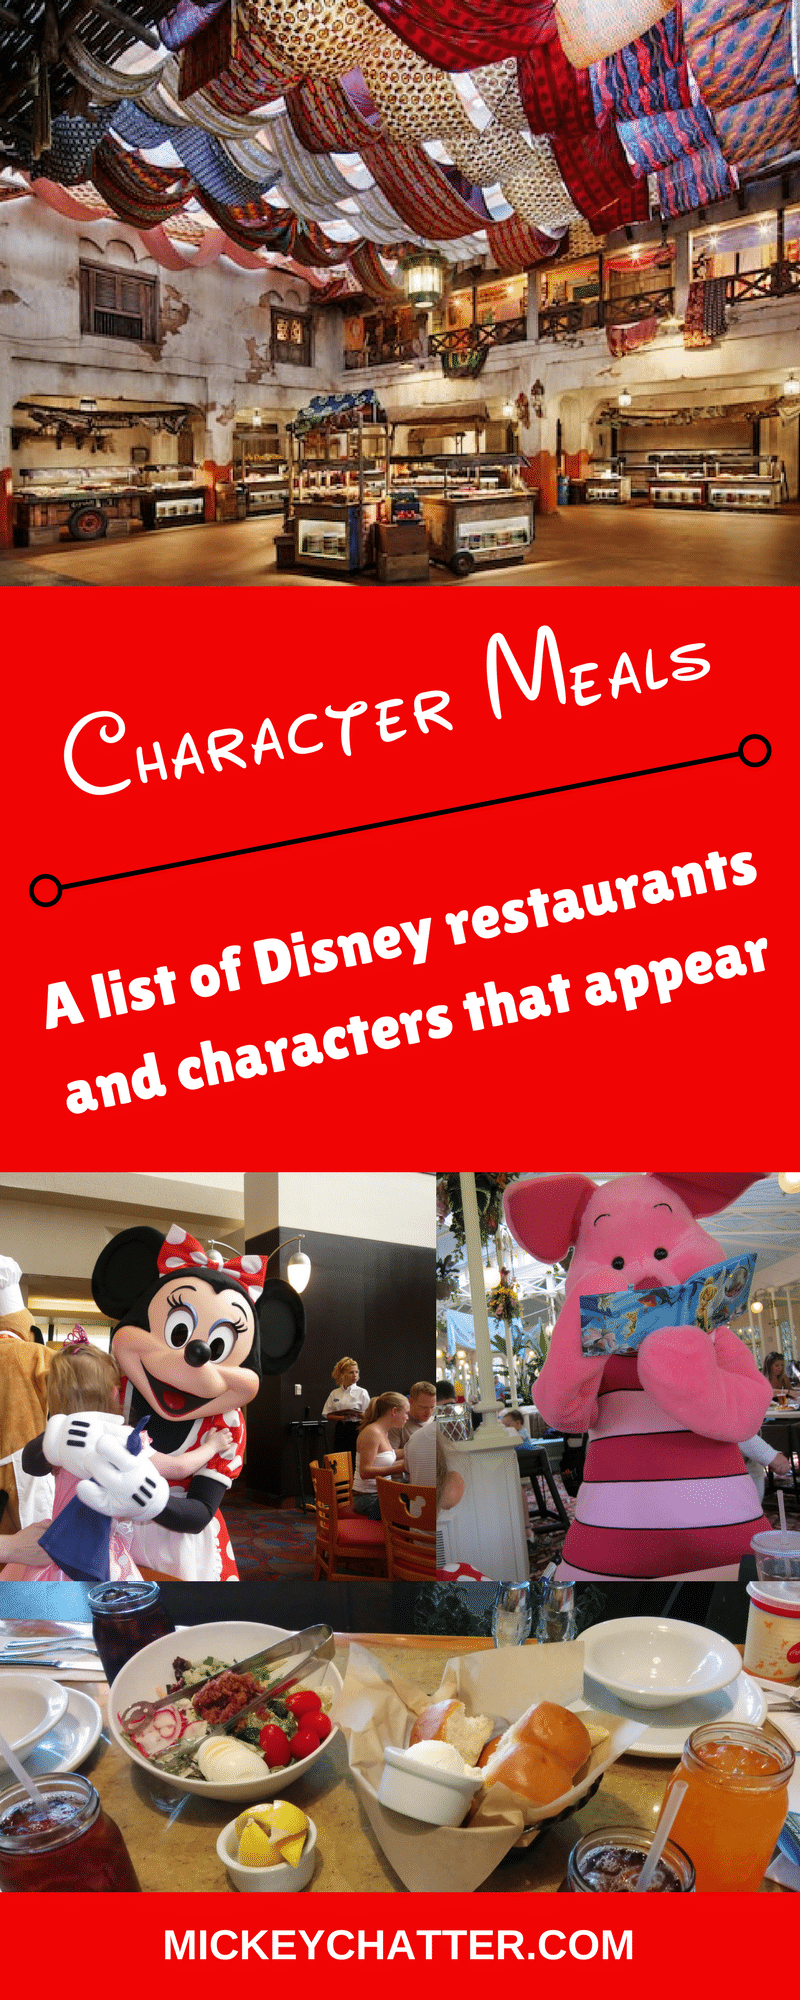 A list of all the character meals and characters that appear at Disney World